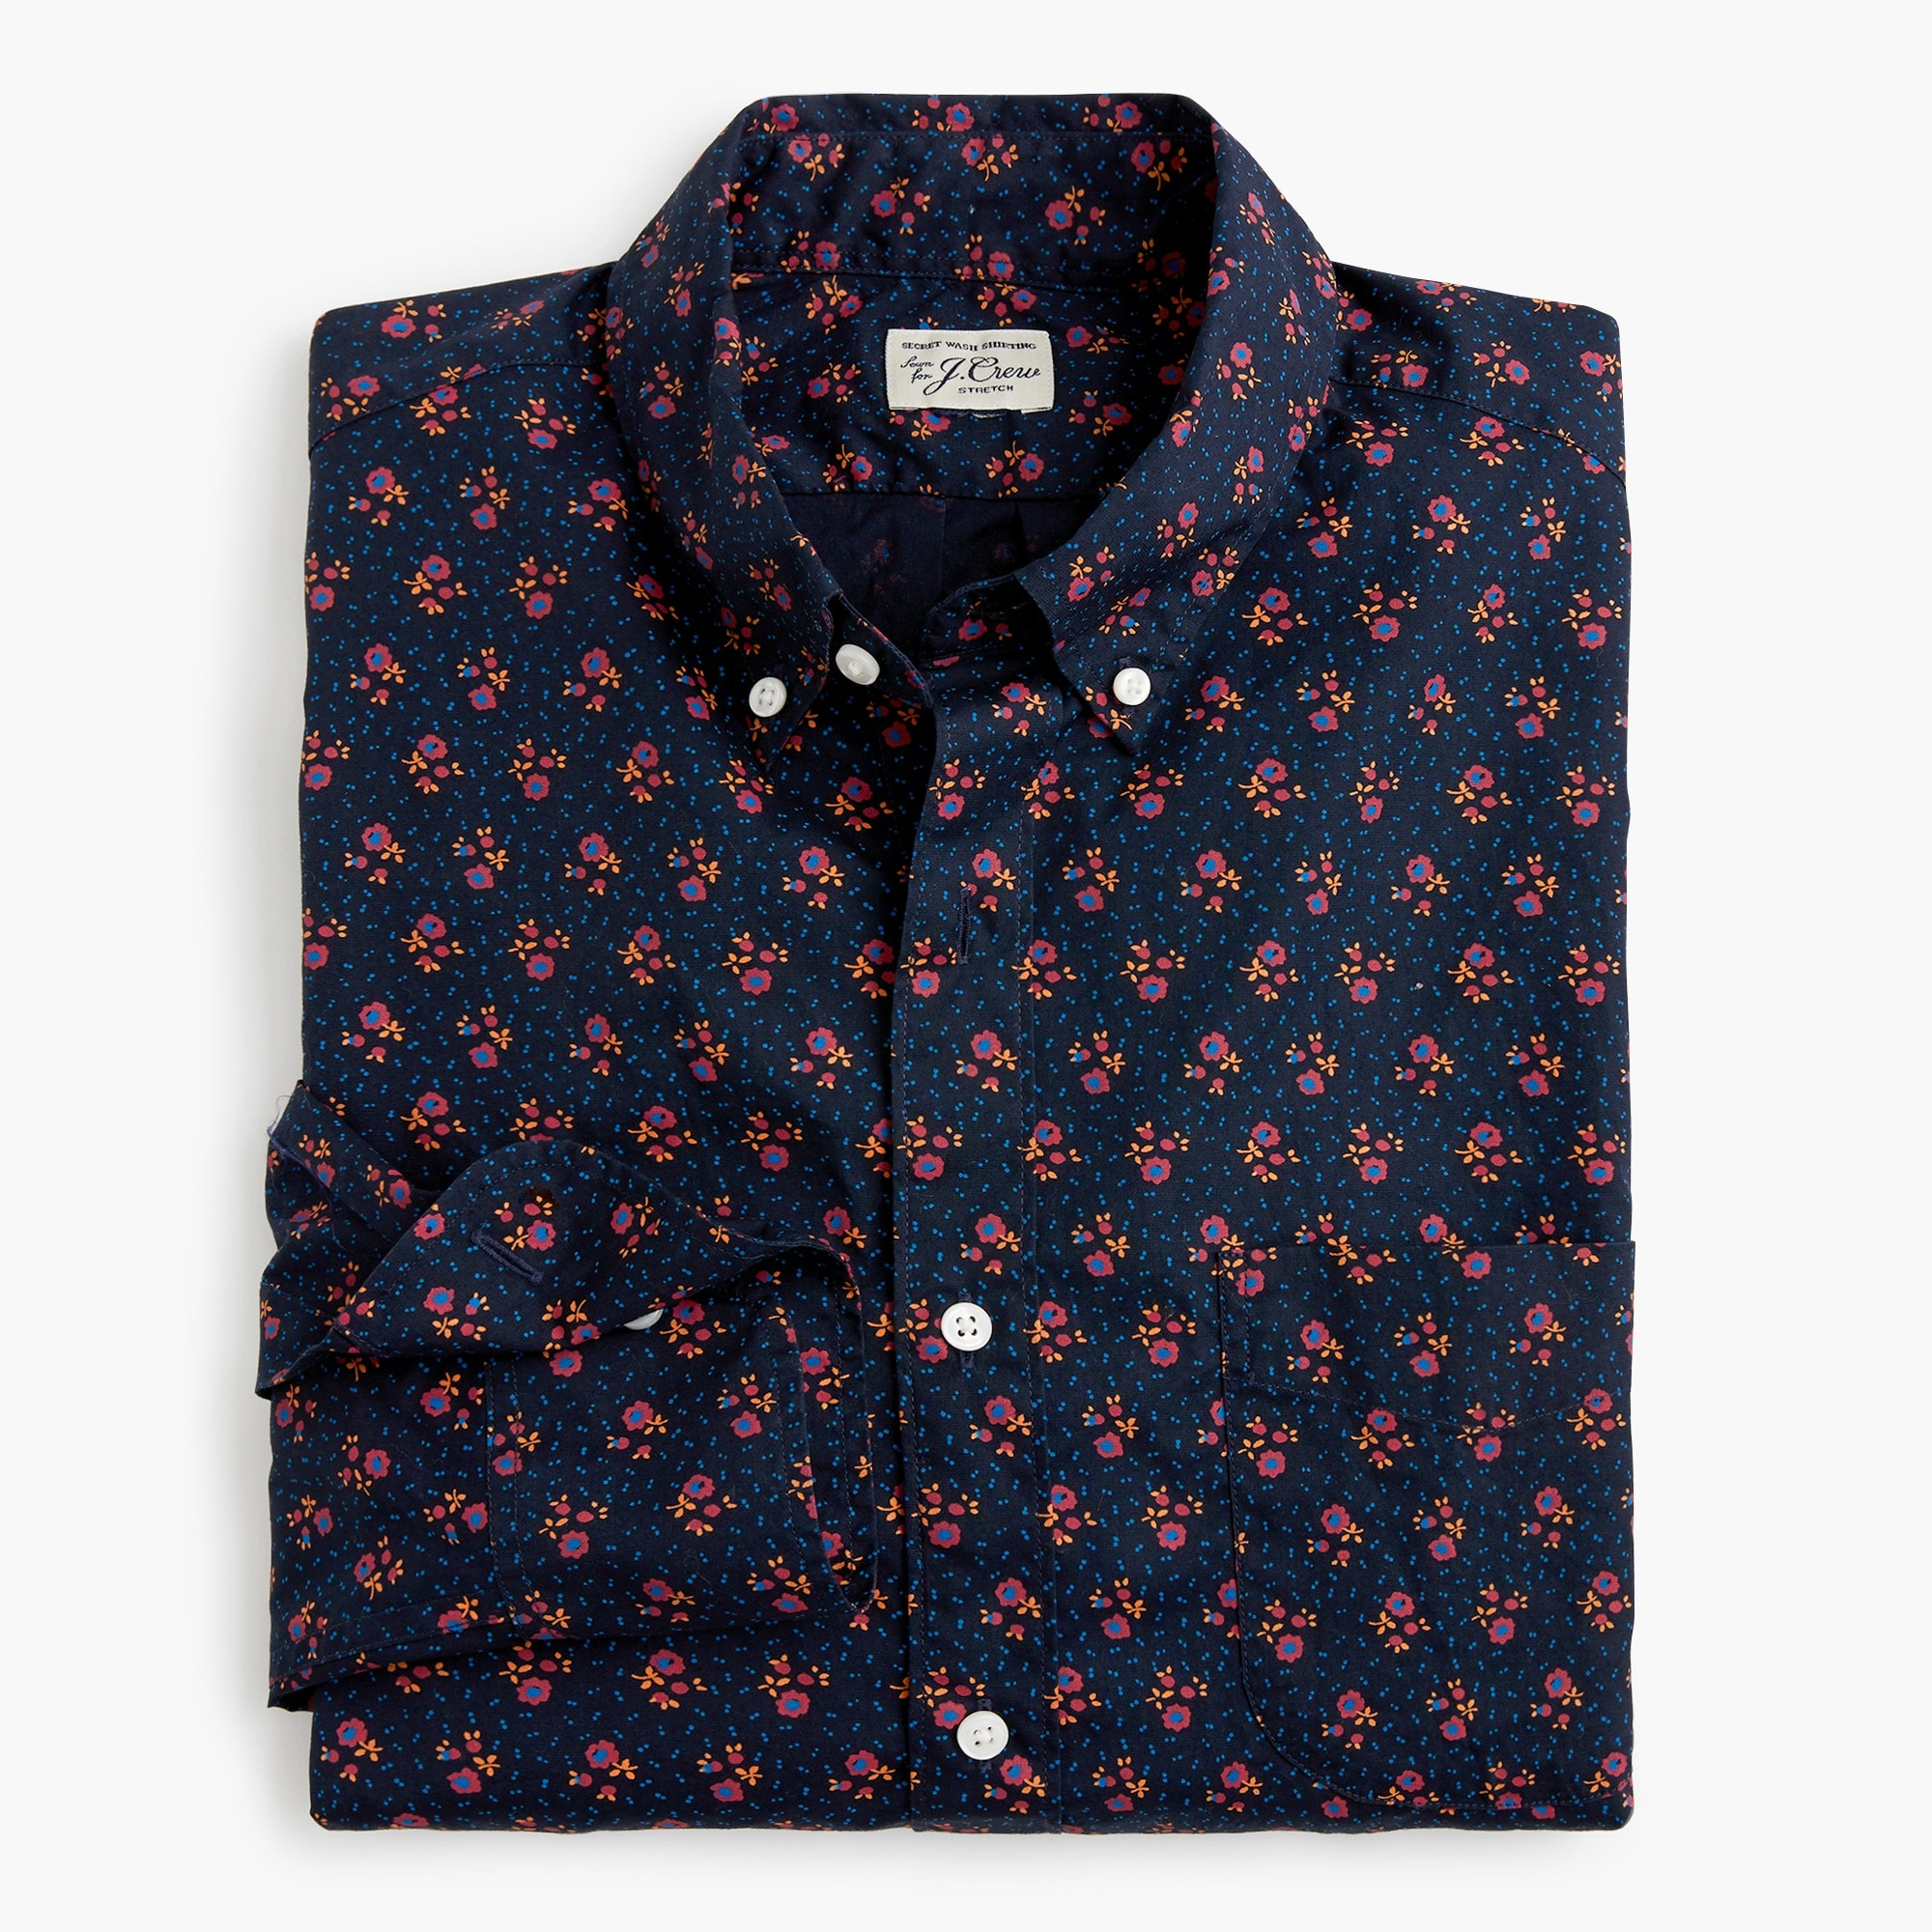 mens Untucked stretch Secret Wash shirt in navy floral